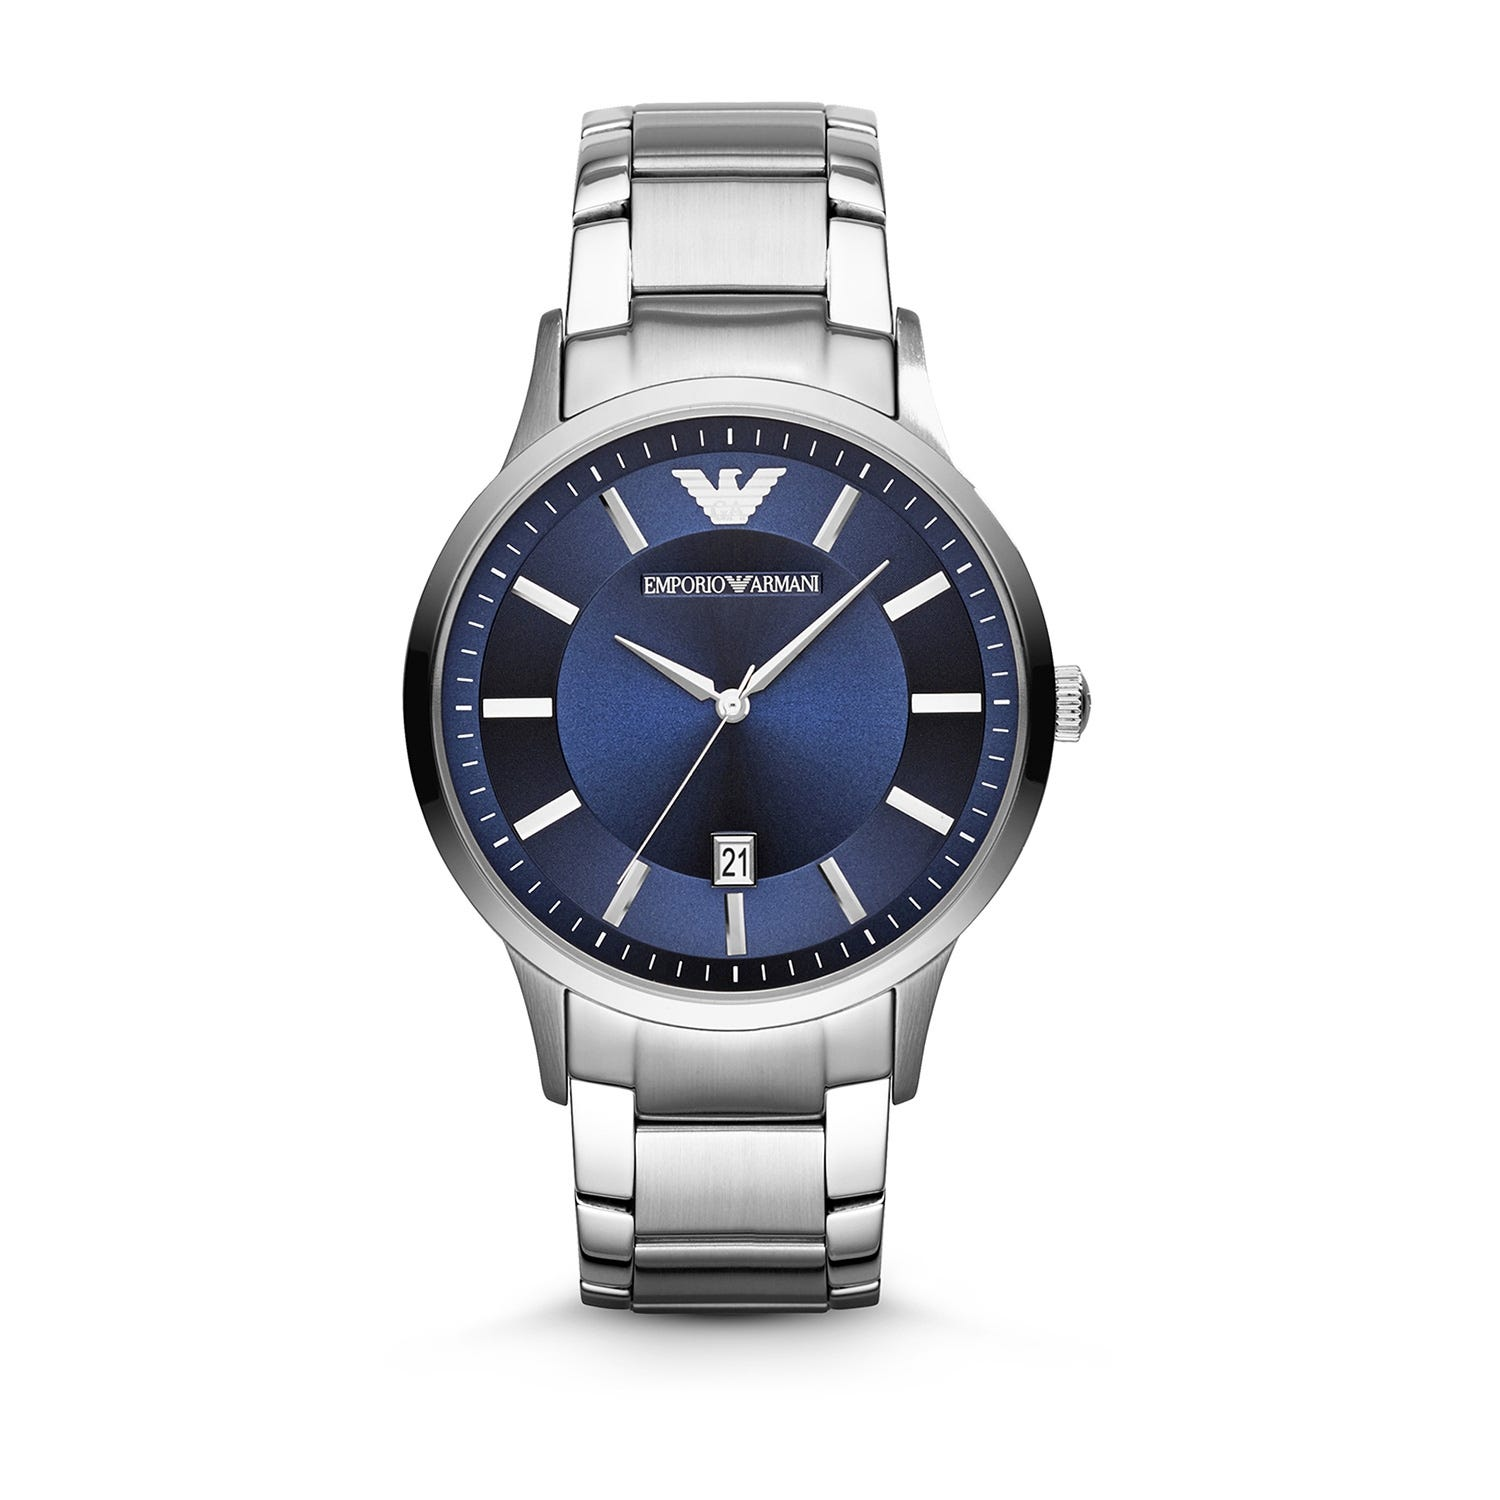 Emporio Armani men's round blue dial stainless steel bracelet watch